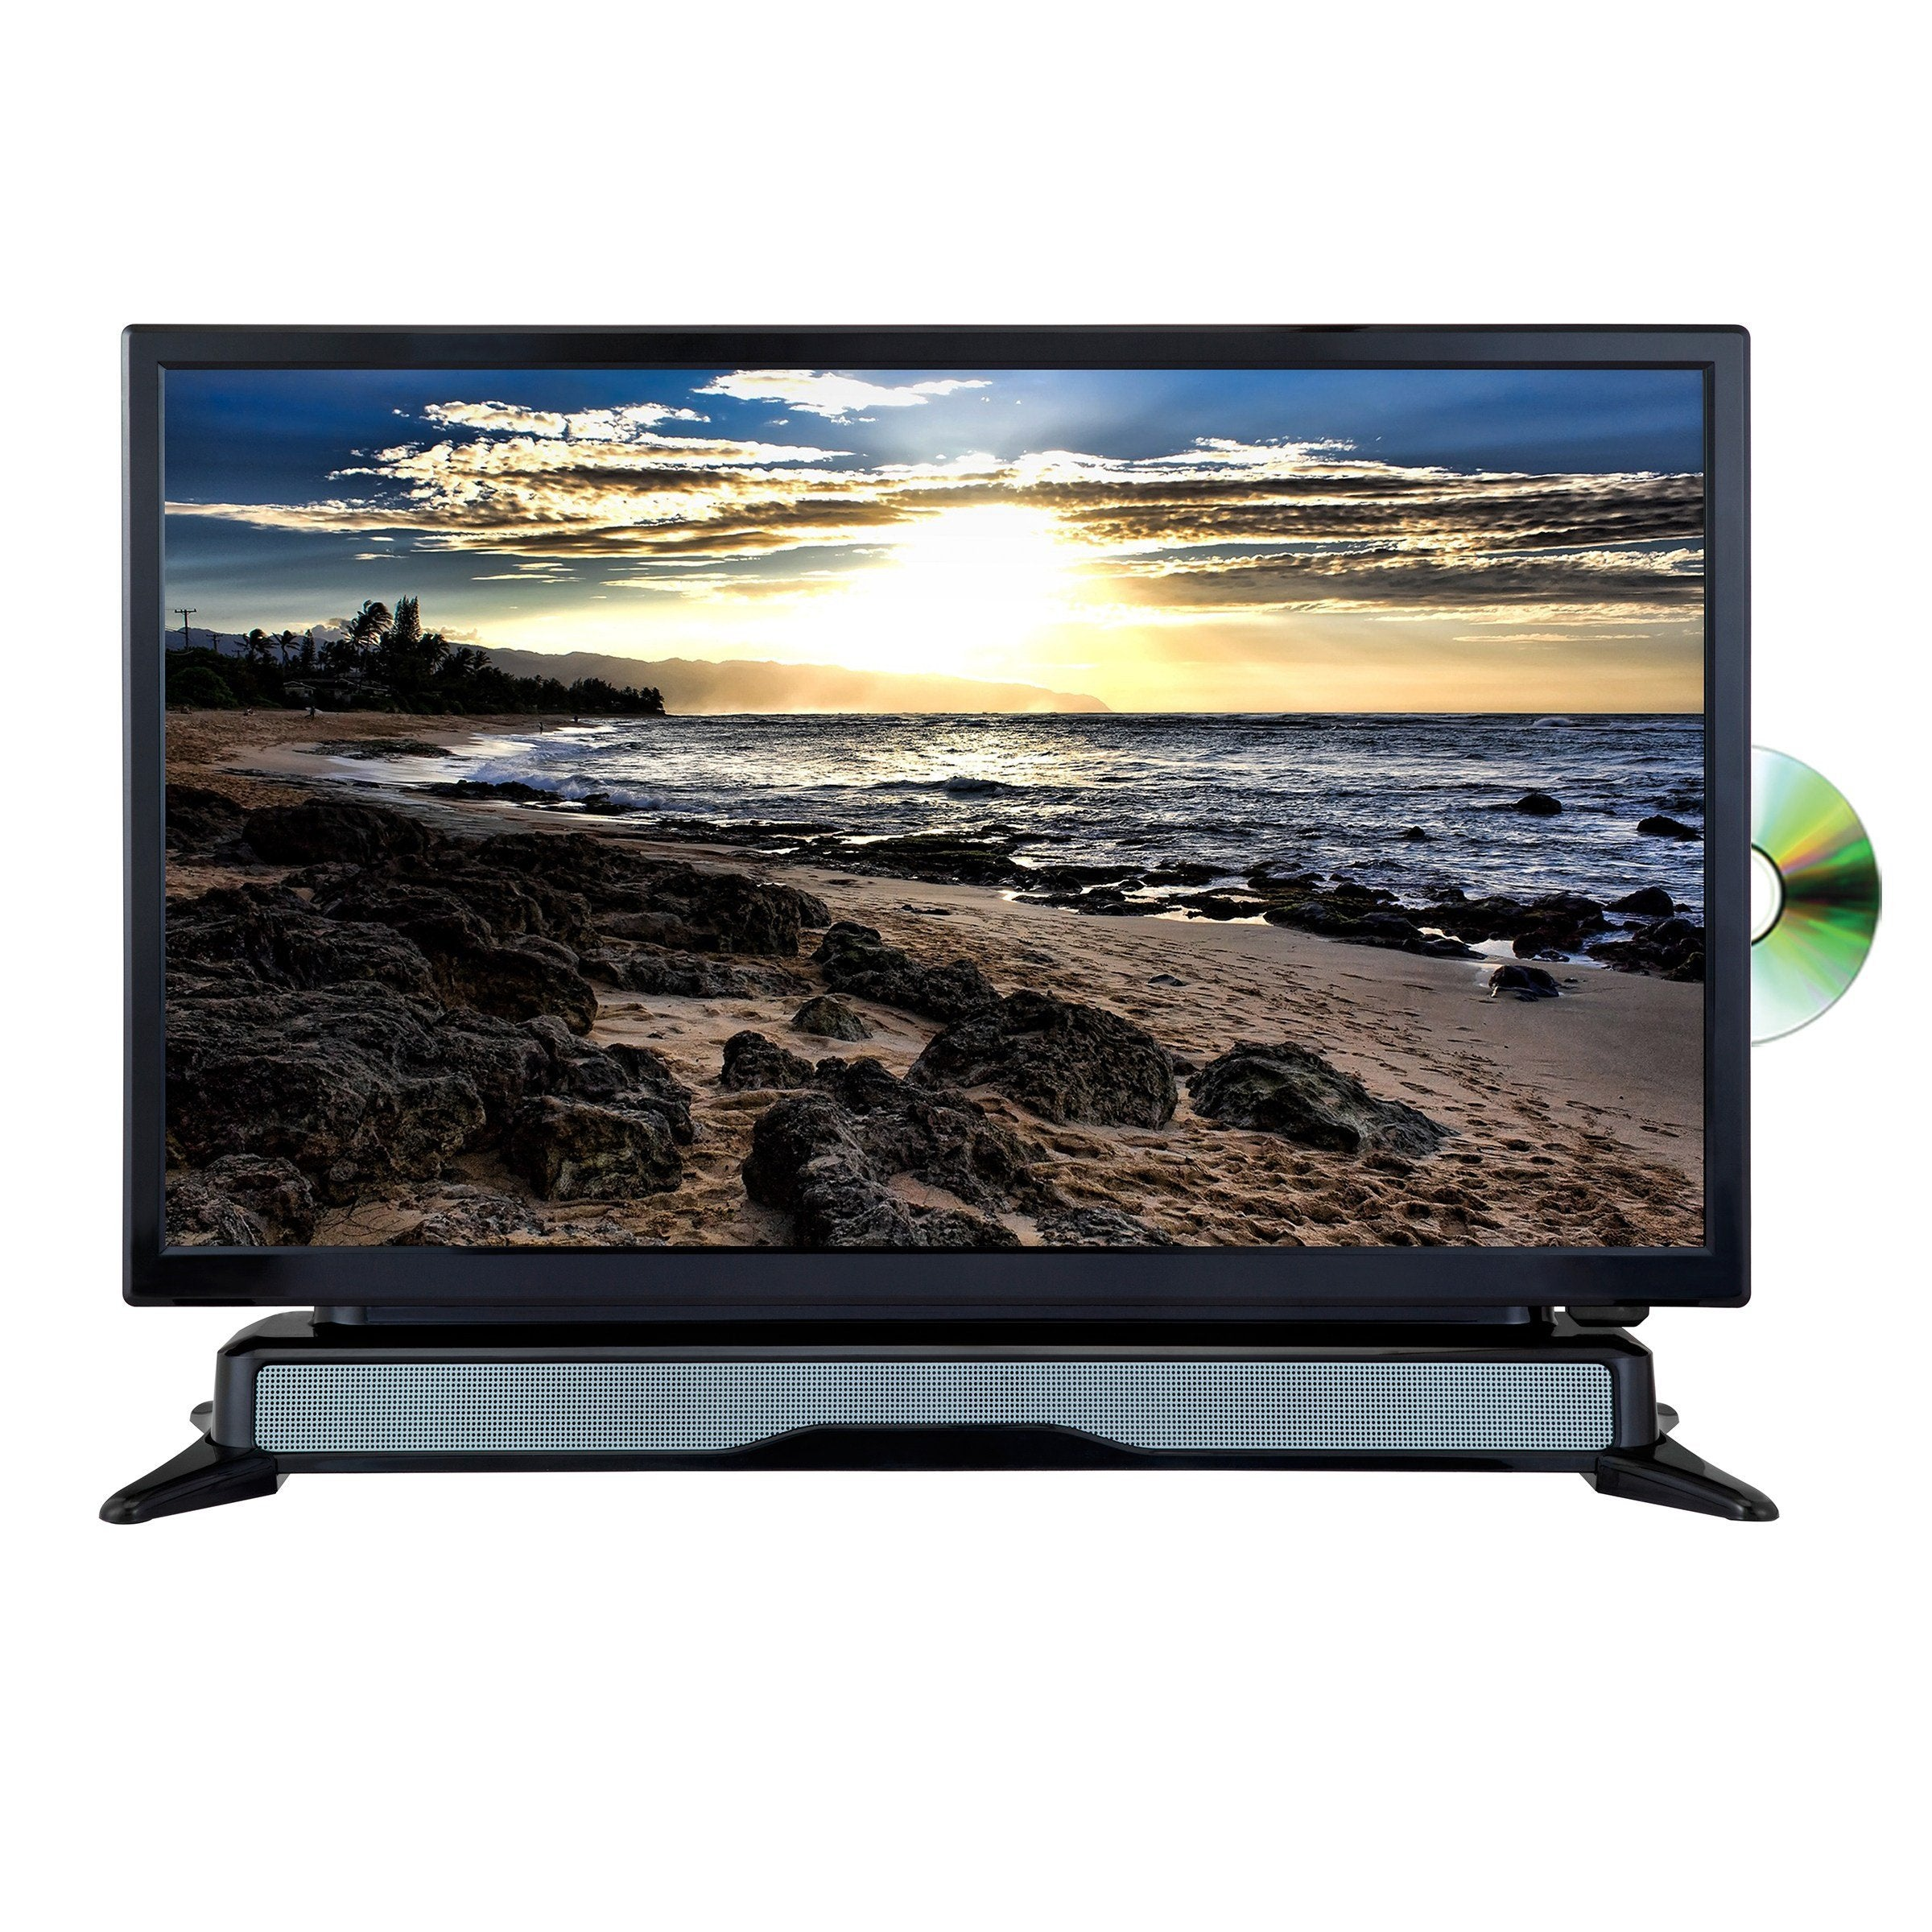 "AXESS  24"" HD TV/DVD Combo with External Soundbar Speaker, SD Card, AC/DC Power, HDMI Port, Remote Control (TVD1804-24)"